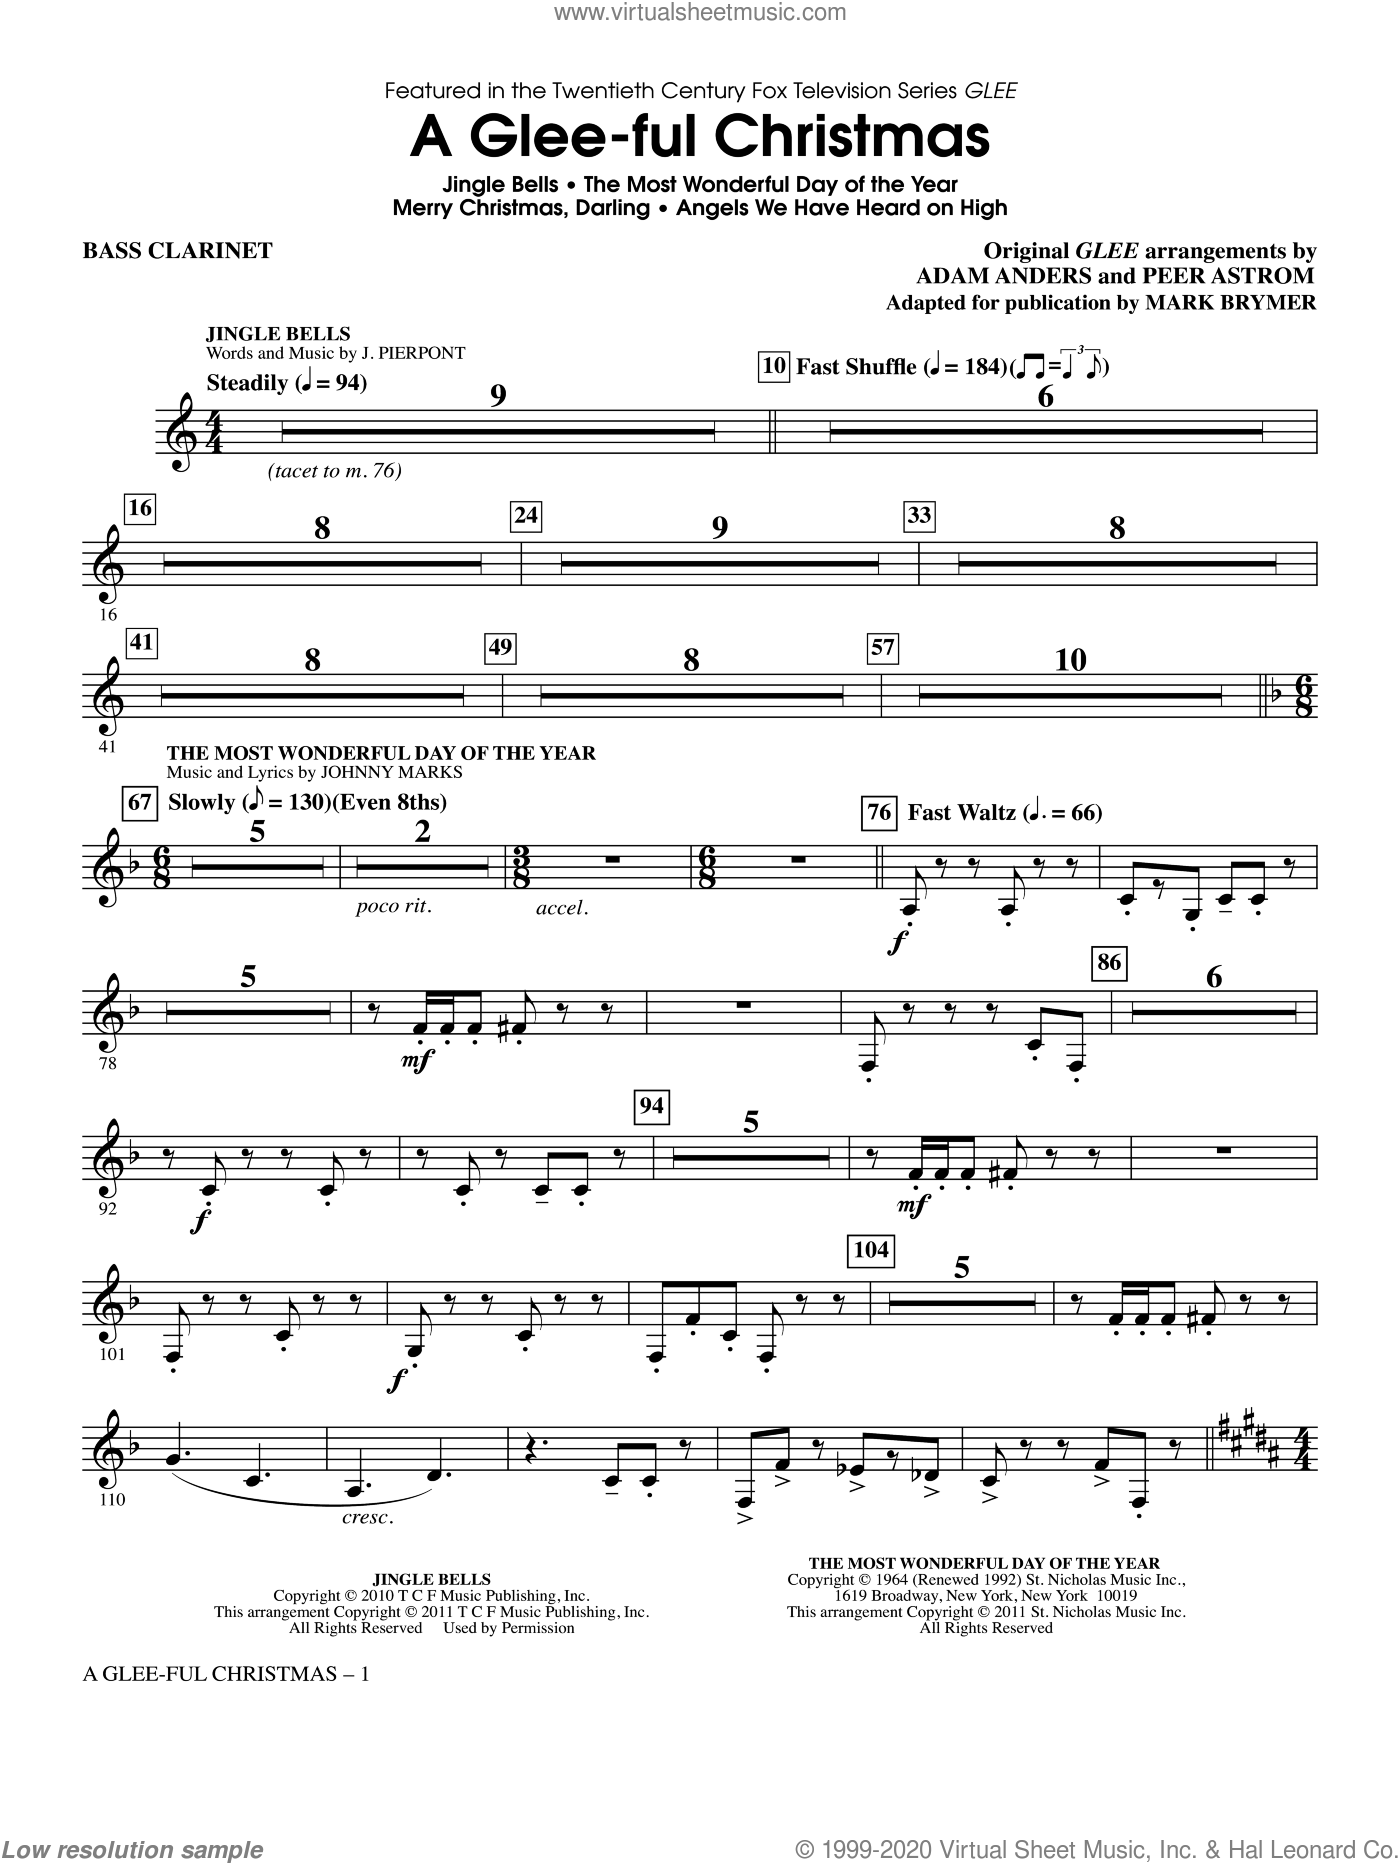 A Glee-ful Christmas (Choral Medley)(arr. Mark Brymer) sheet music for orchestra/band (Bb bass clarinet) by Mark Brymer, Adam Anders, Glee Cast, James Chadwick, Miscellaneous and Peer Astrom, intermediate skill level